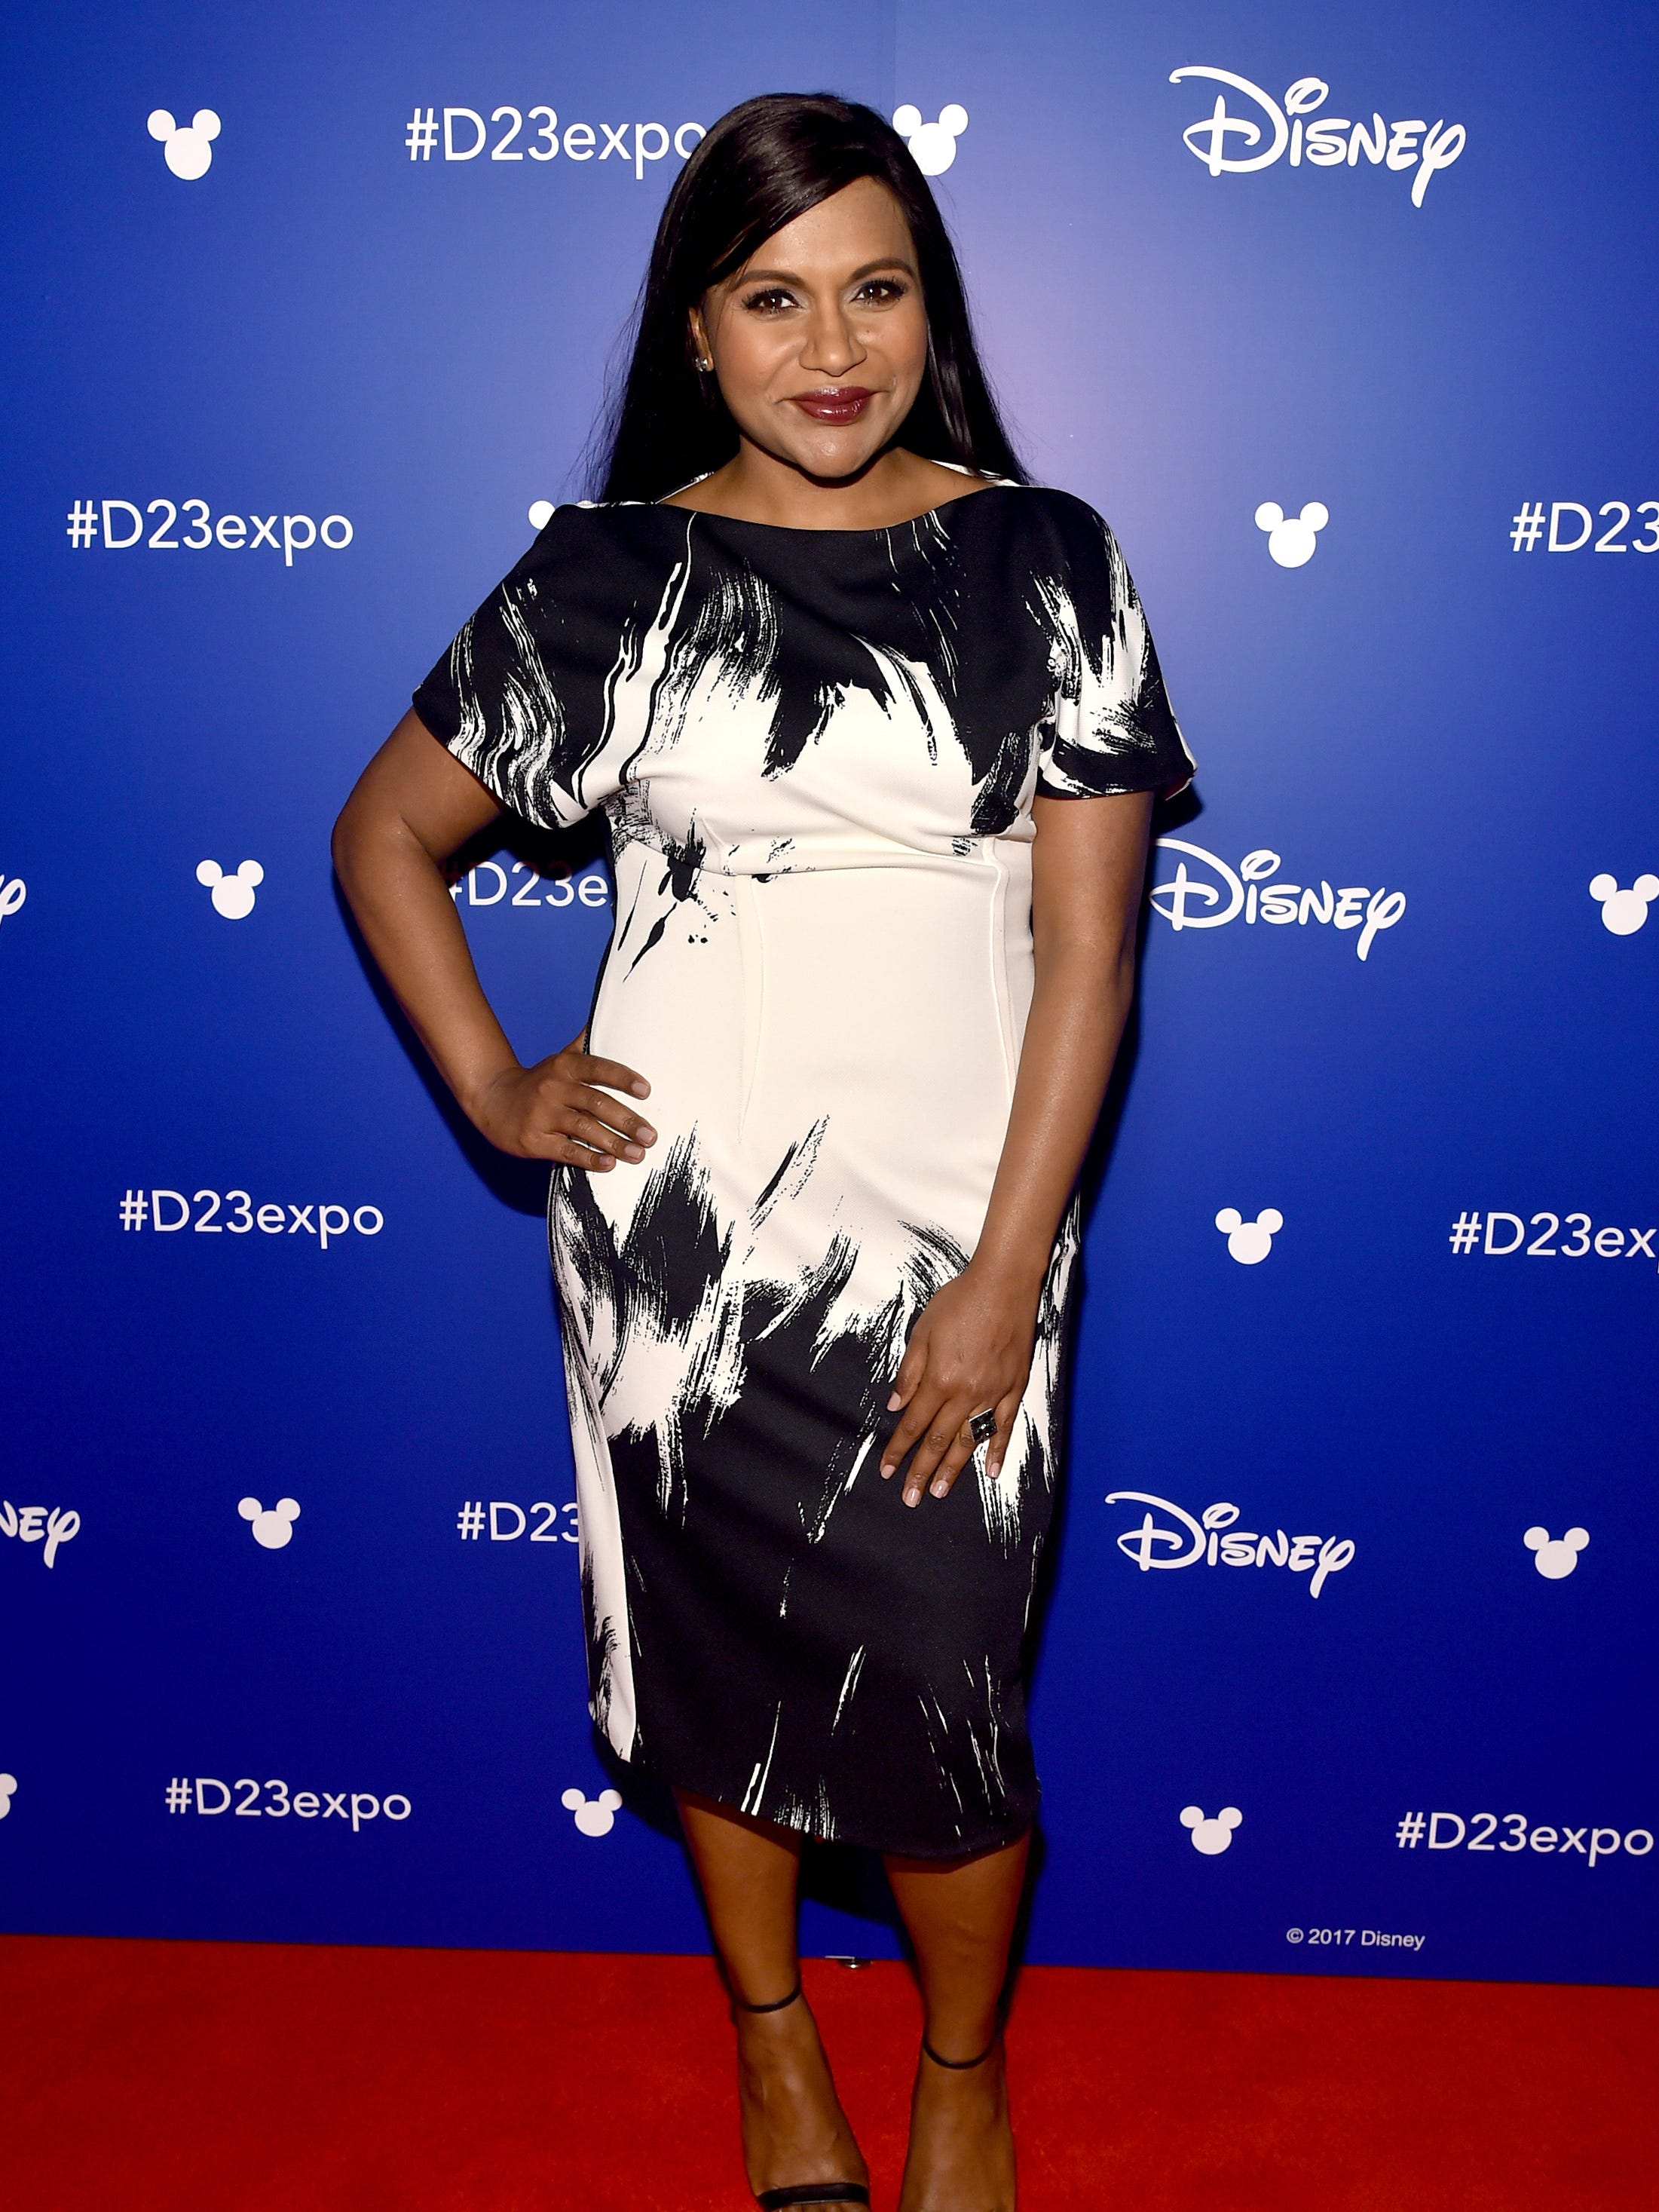 How Does Pregnant Mindy Kaling Shoot Mindy Project With Lots Of Stretch